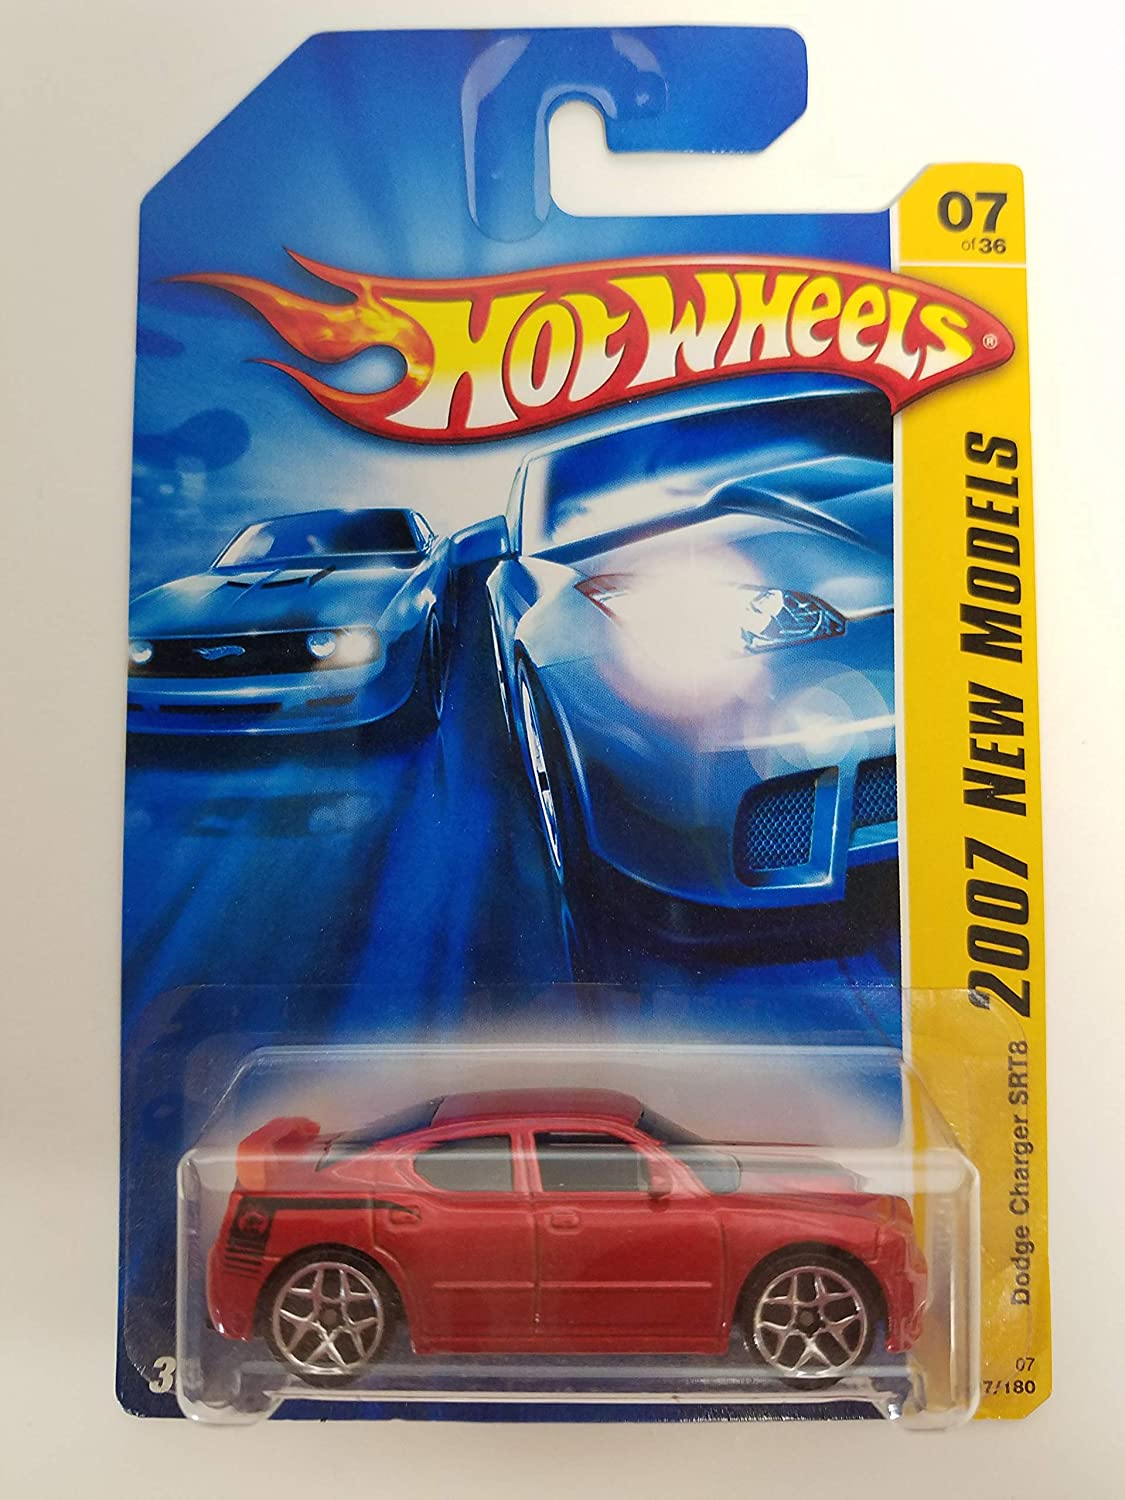 Dodge Charger SRT8 Red Color 2007 New Models 7 of 36 Hot Wheels diecast car No.007